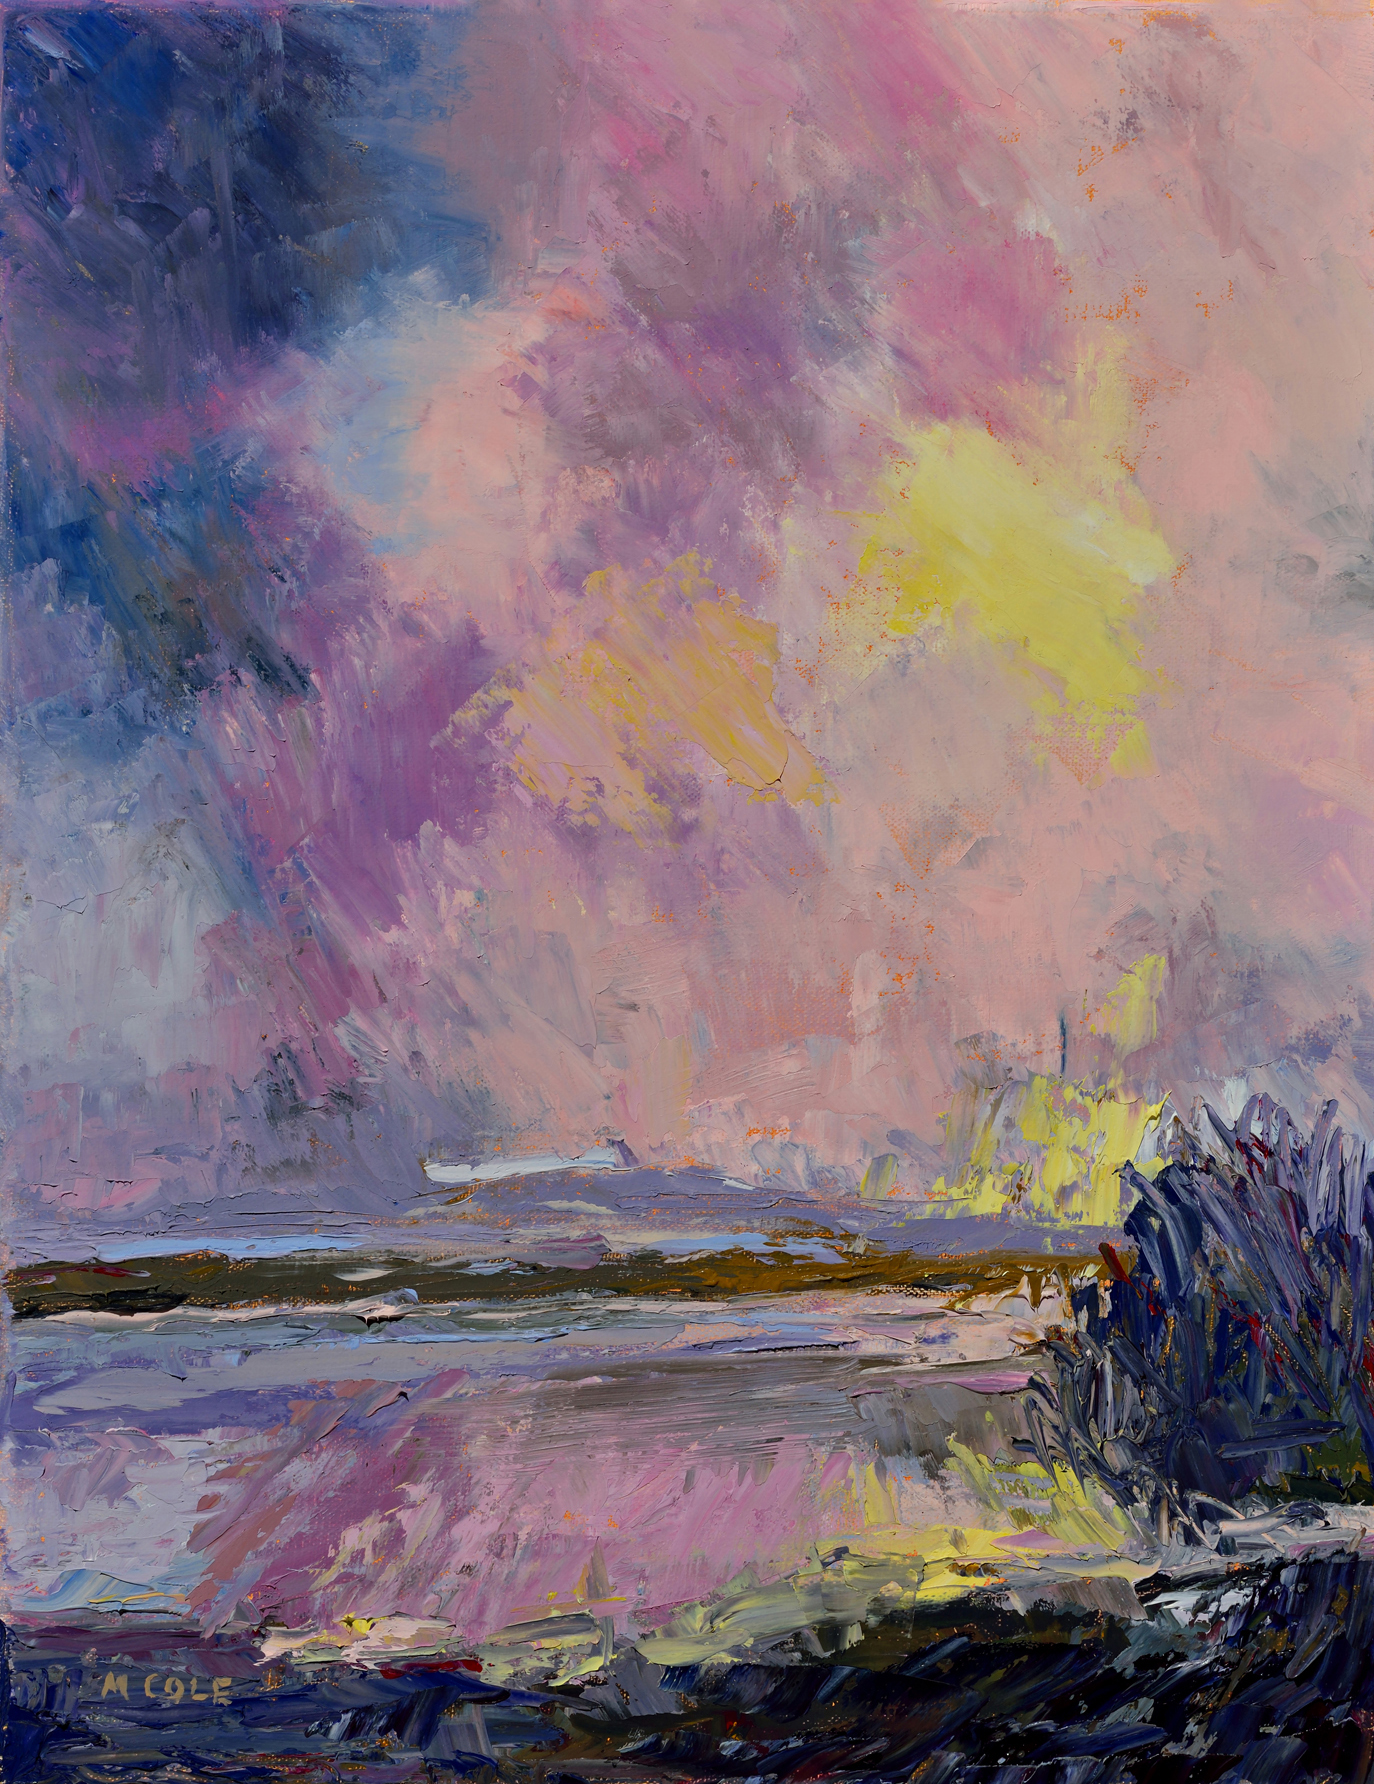 "Marie Cole,  River, Late Afternoon,  oil on linen, 11″ x 14″       Normal   0           false   false   false     EN-US   X-NONE   X-NONE                                                                                                                                                                                                                                                                                                                                                                                                                                                                                                                                                                                                                                                                                                                                                                                                                                                          /* Style Definitions */  table.MsoNormalTable 	{mso-style-name:""Table Normal""; 	mso-tstyle-rowband-size:0; 	mso-tstyle-colband-size:0; 	mso-style-noshow:yes; 	mso-style-priority:99; 	mso-style-parent:""""; 	mso-padding-alt:0in 5.4pt 0in 5.4pt; 	mso-para-margin-top:0in; 	mso-para-margin-right:0in; 	mso-para-margin-bottom:8.0pt; 	mso-para-margin-left:0in; 	line-height:107%; 	mso-pagination:widow-orphan; 	font-size:11.0pt; 	font-family:""Calibri"",sans-serif; 	mso-ascii-font-family:Calibri; 	mso-ascii-theme-font:minor-latin; 	mso-hansi-font-family:Calibri; 	mso-hansi-theme-font:minor-latin;}"